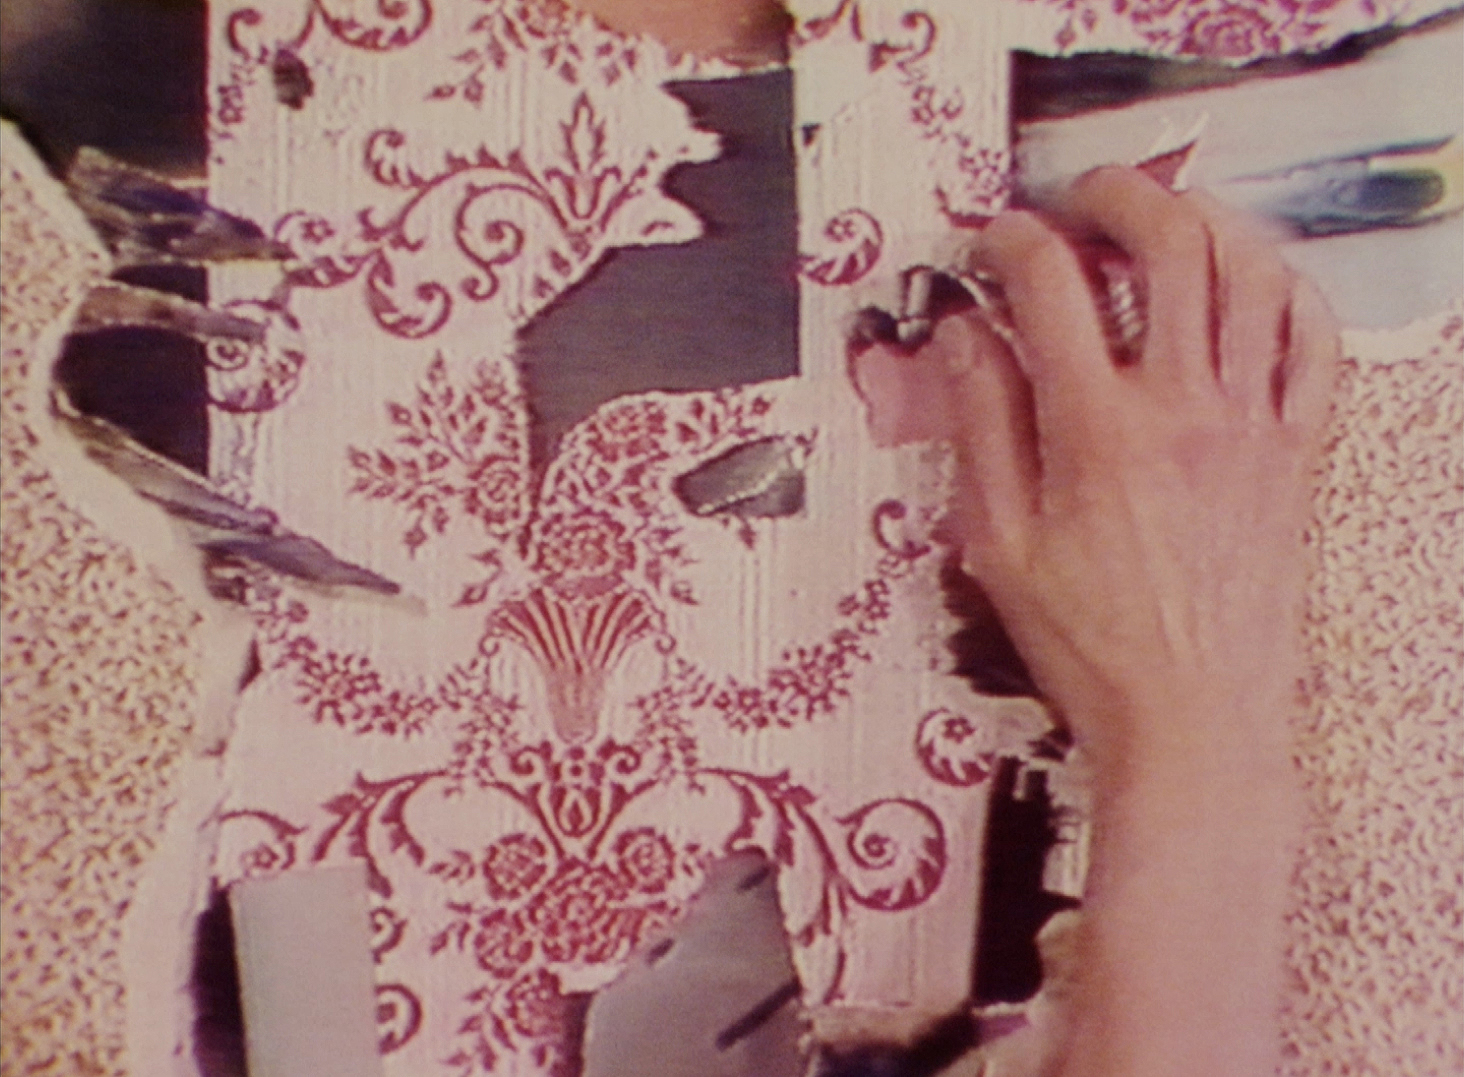 TINA KEANE, Faded Wallpaper 1988, 16mm film/U-matic tape transferred to digital, colour, sound, 20 minutes. Edition of 7 (+1 x A/P) 2017 published by England & Co with the artist 2017